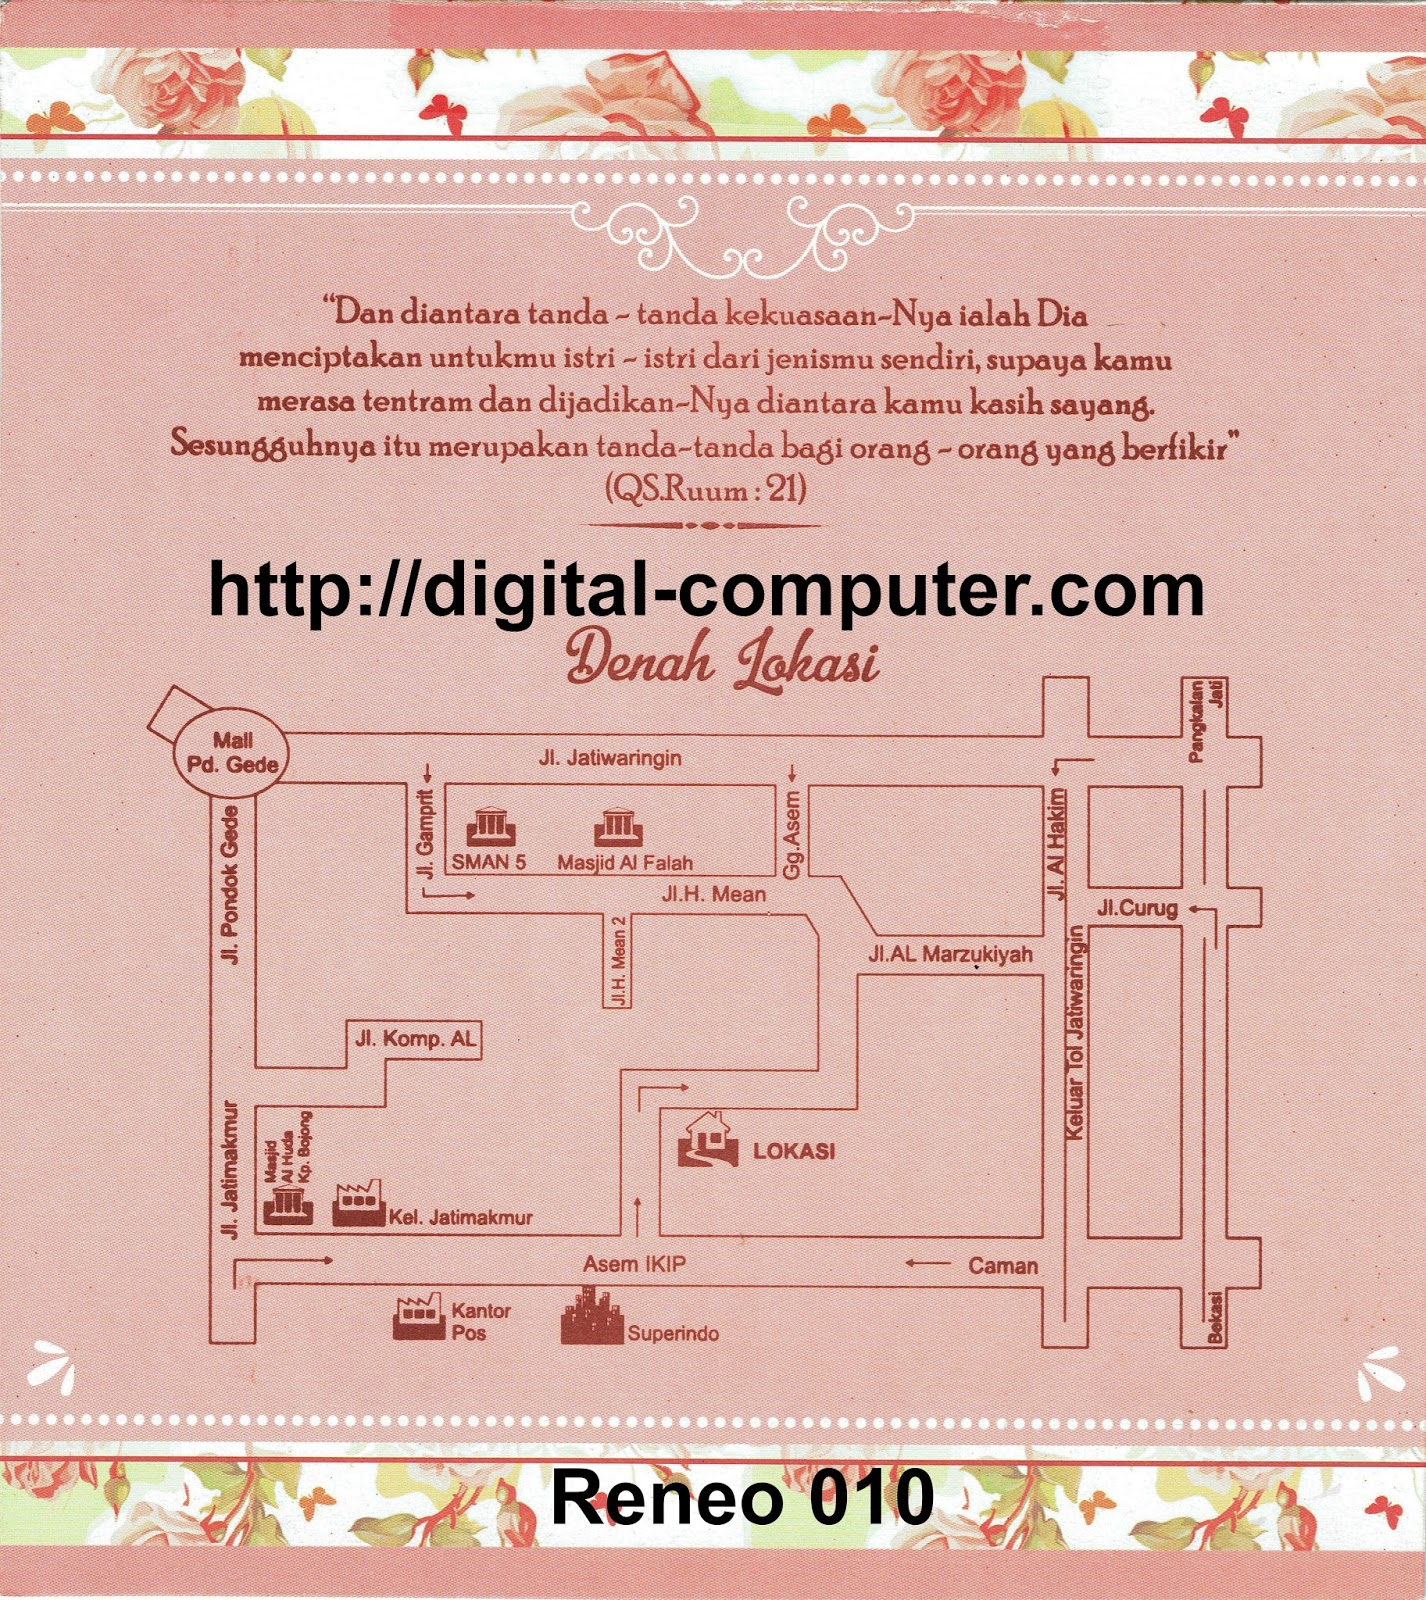 Undangan Softcover Reneo 010